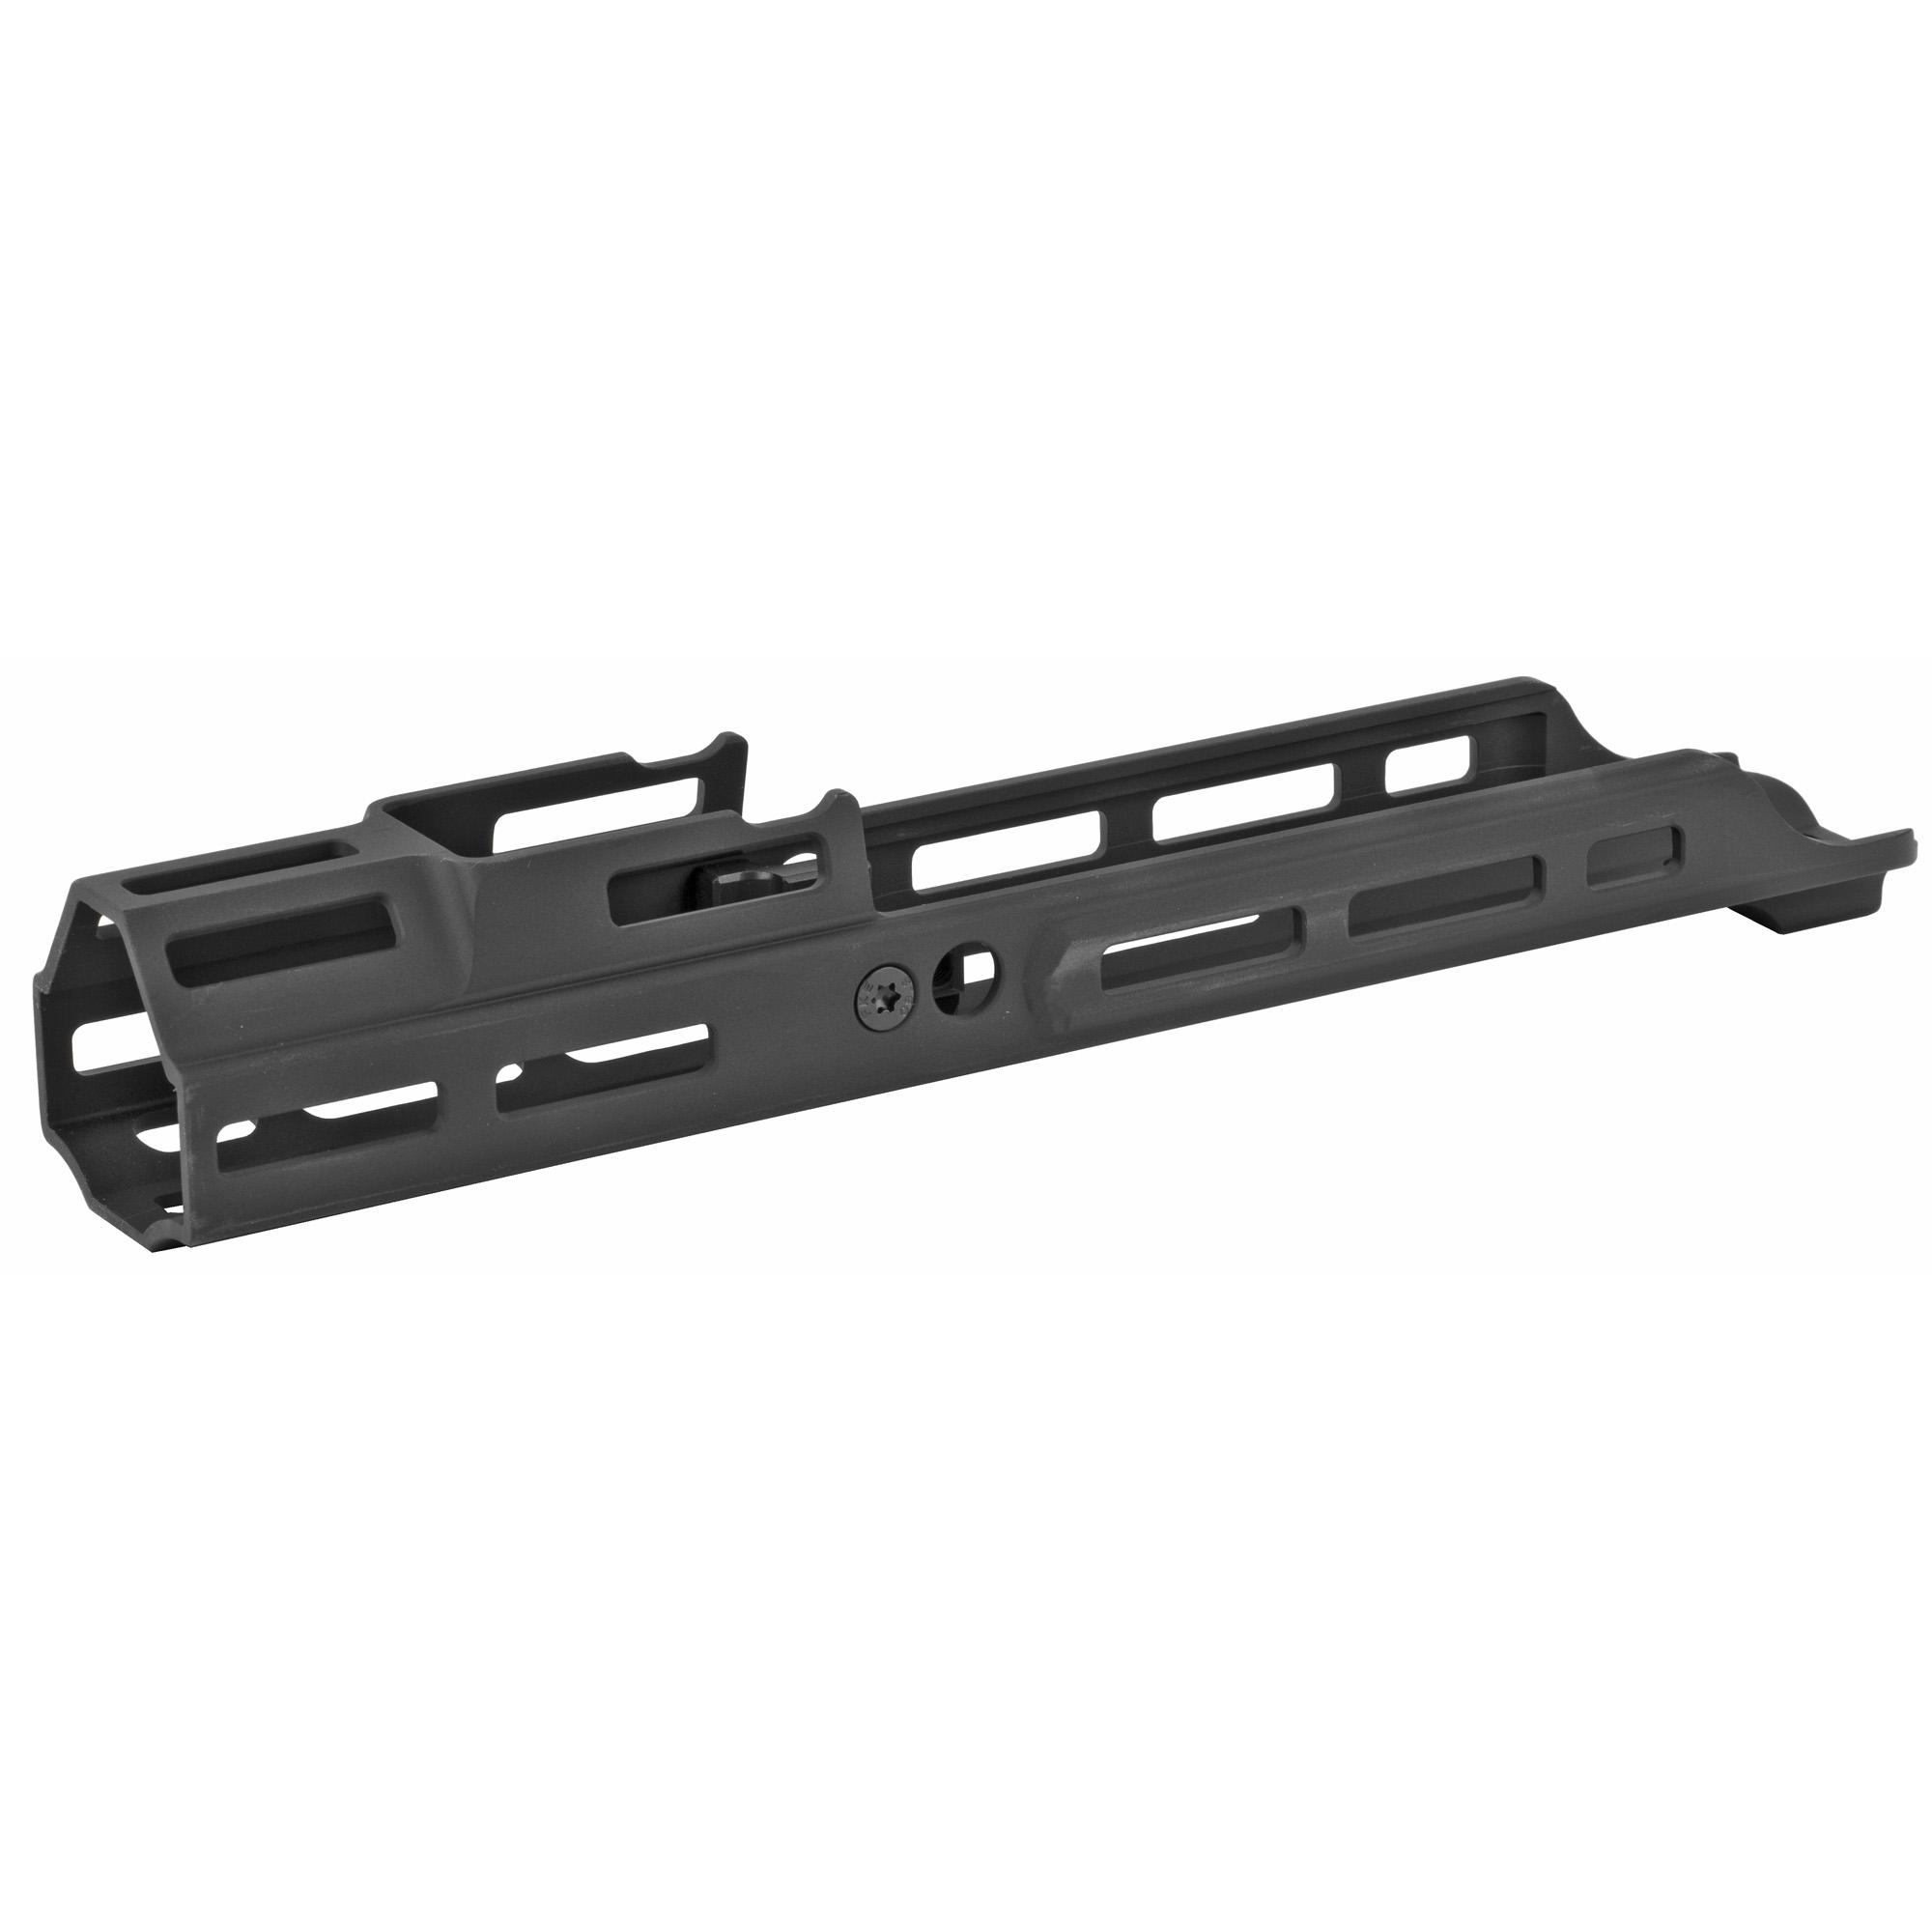 Kinetic Development Group, LLC Kinetic Development Group Scar Mrex Mark Ii M-lok 4.25